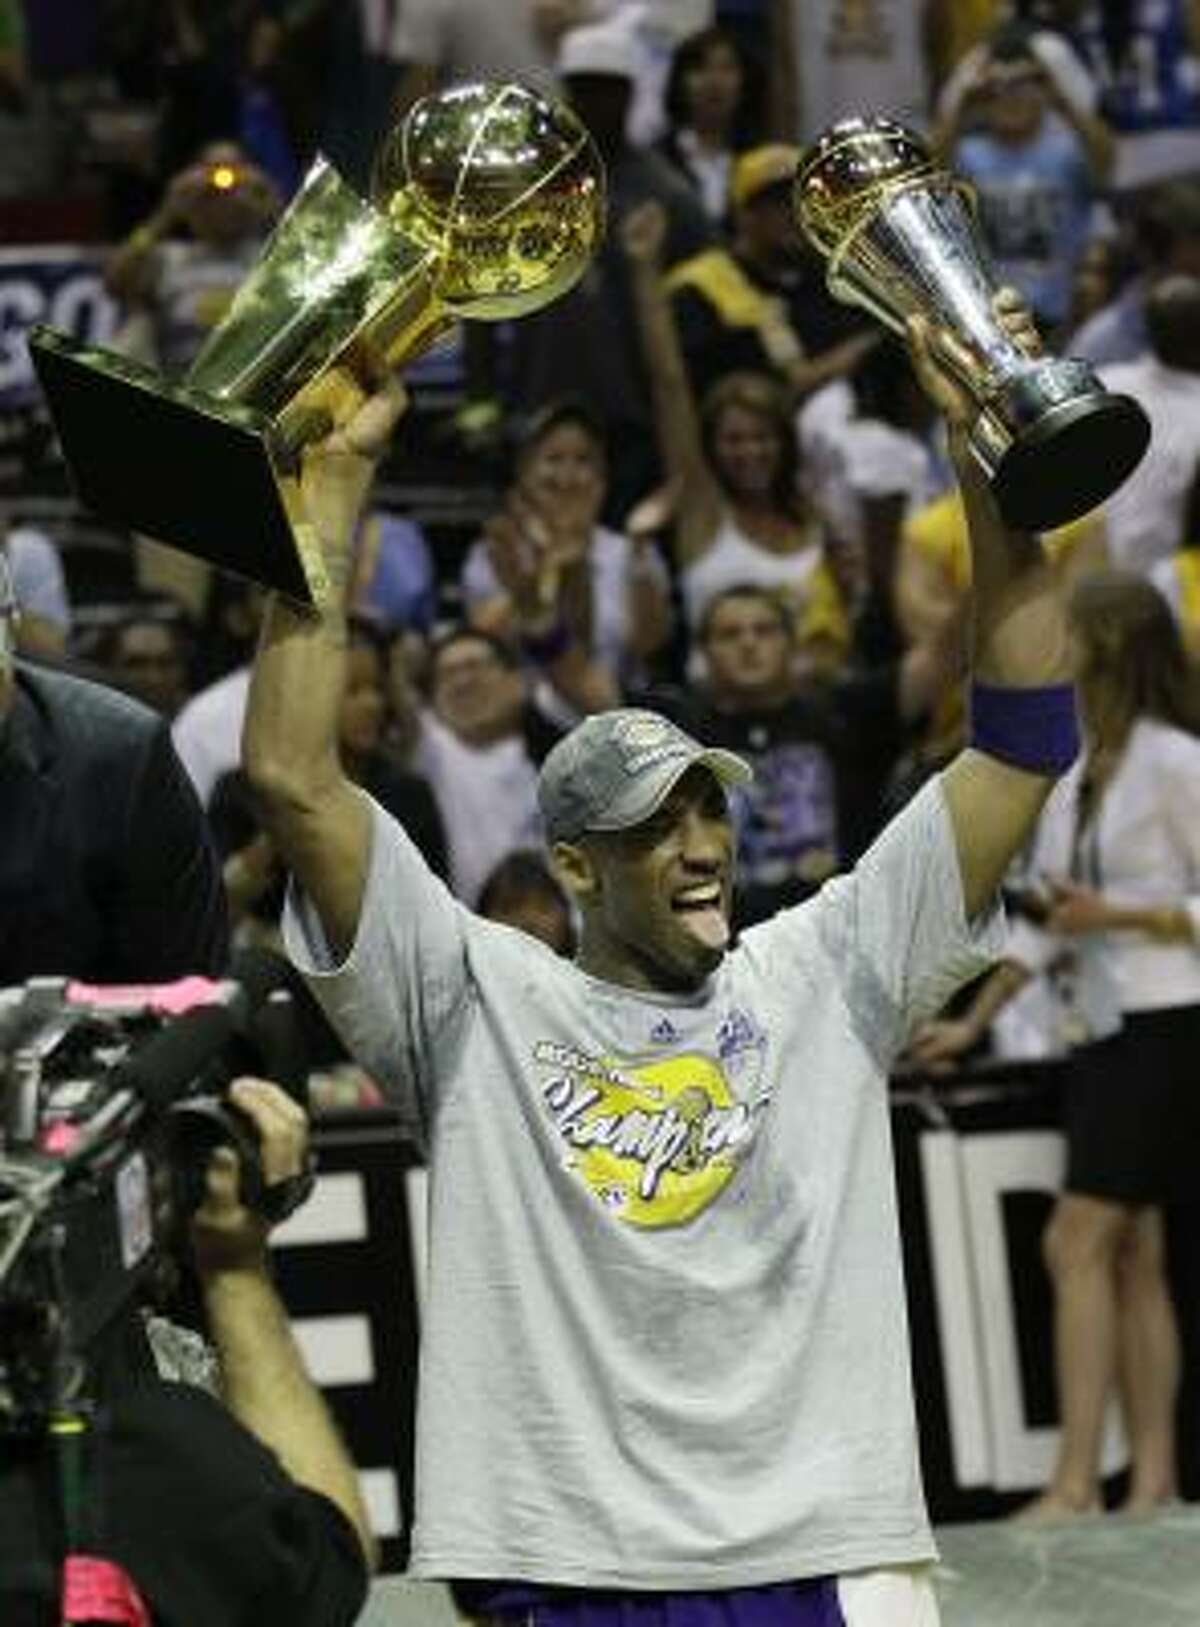 Game 5: Los Angeles Lakers 99, Orlando Magic 86 Los Angeles Lakers' Kobe Bryant holds the championship trophy and Finals MVP trophy after the Lakers beat the Orlando Magic.